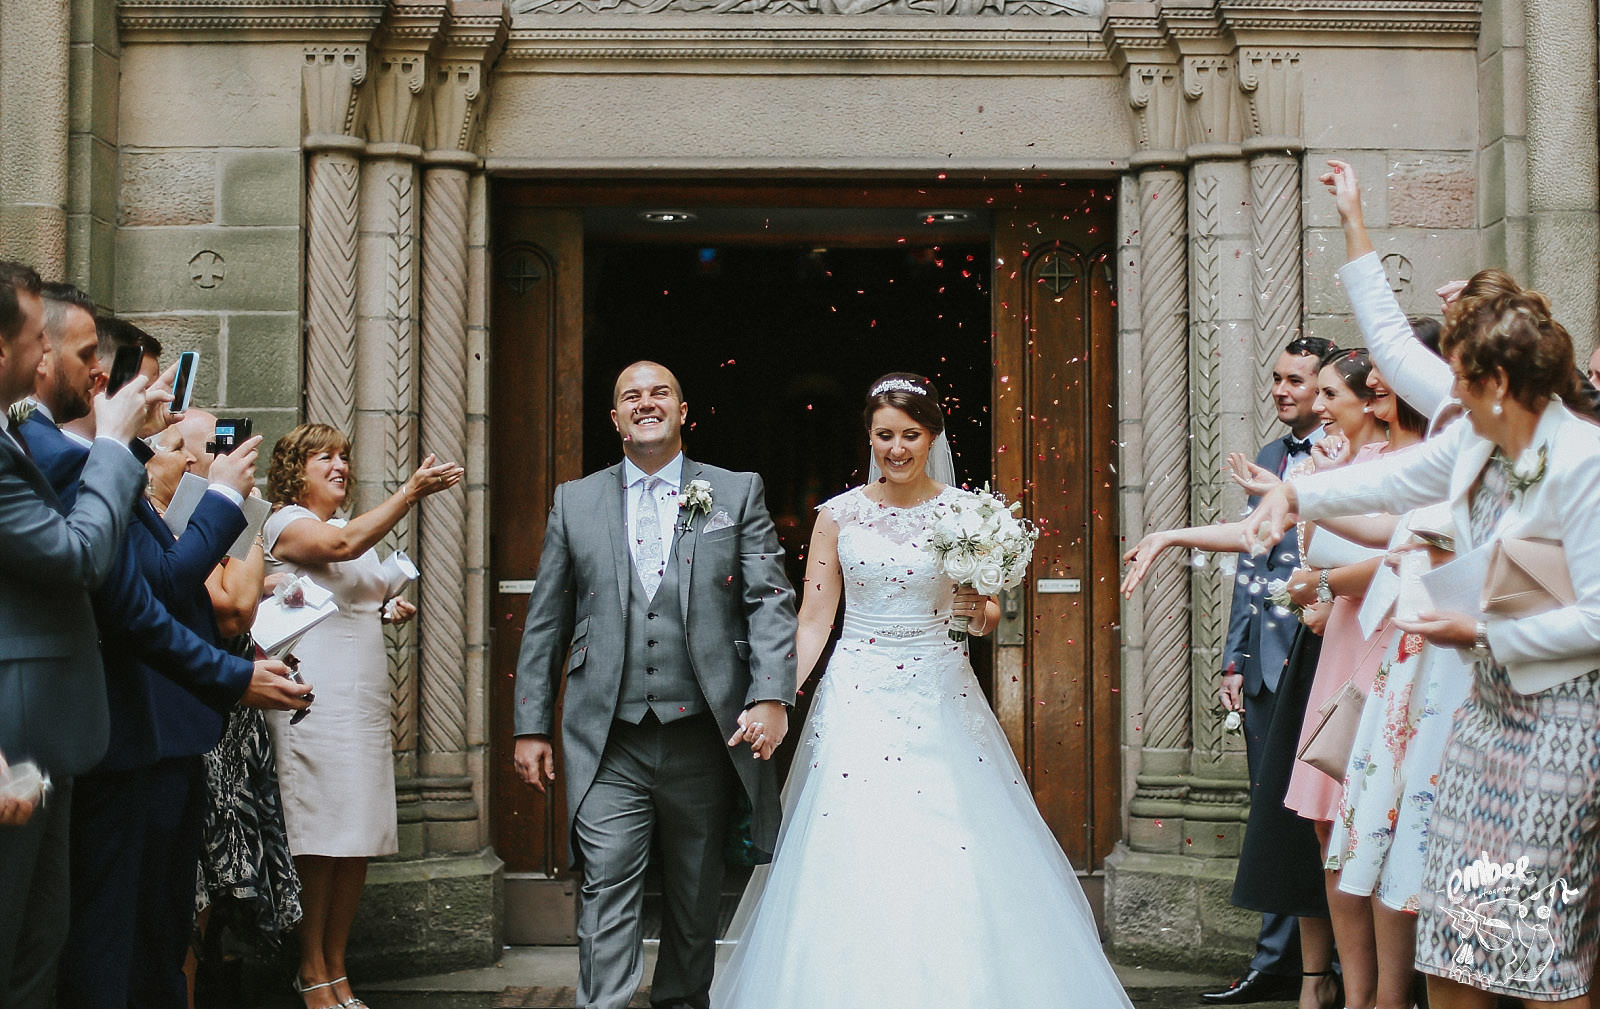 confetti being thrown over bride and groom at a church by guests